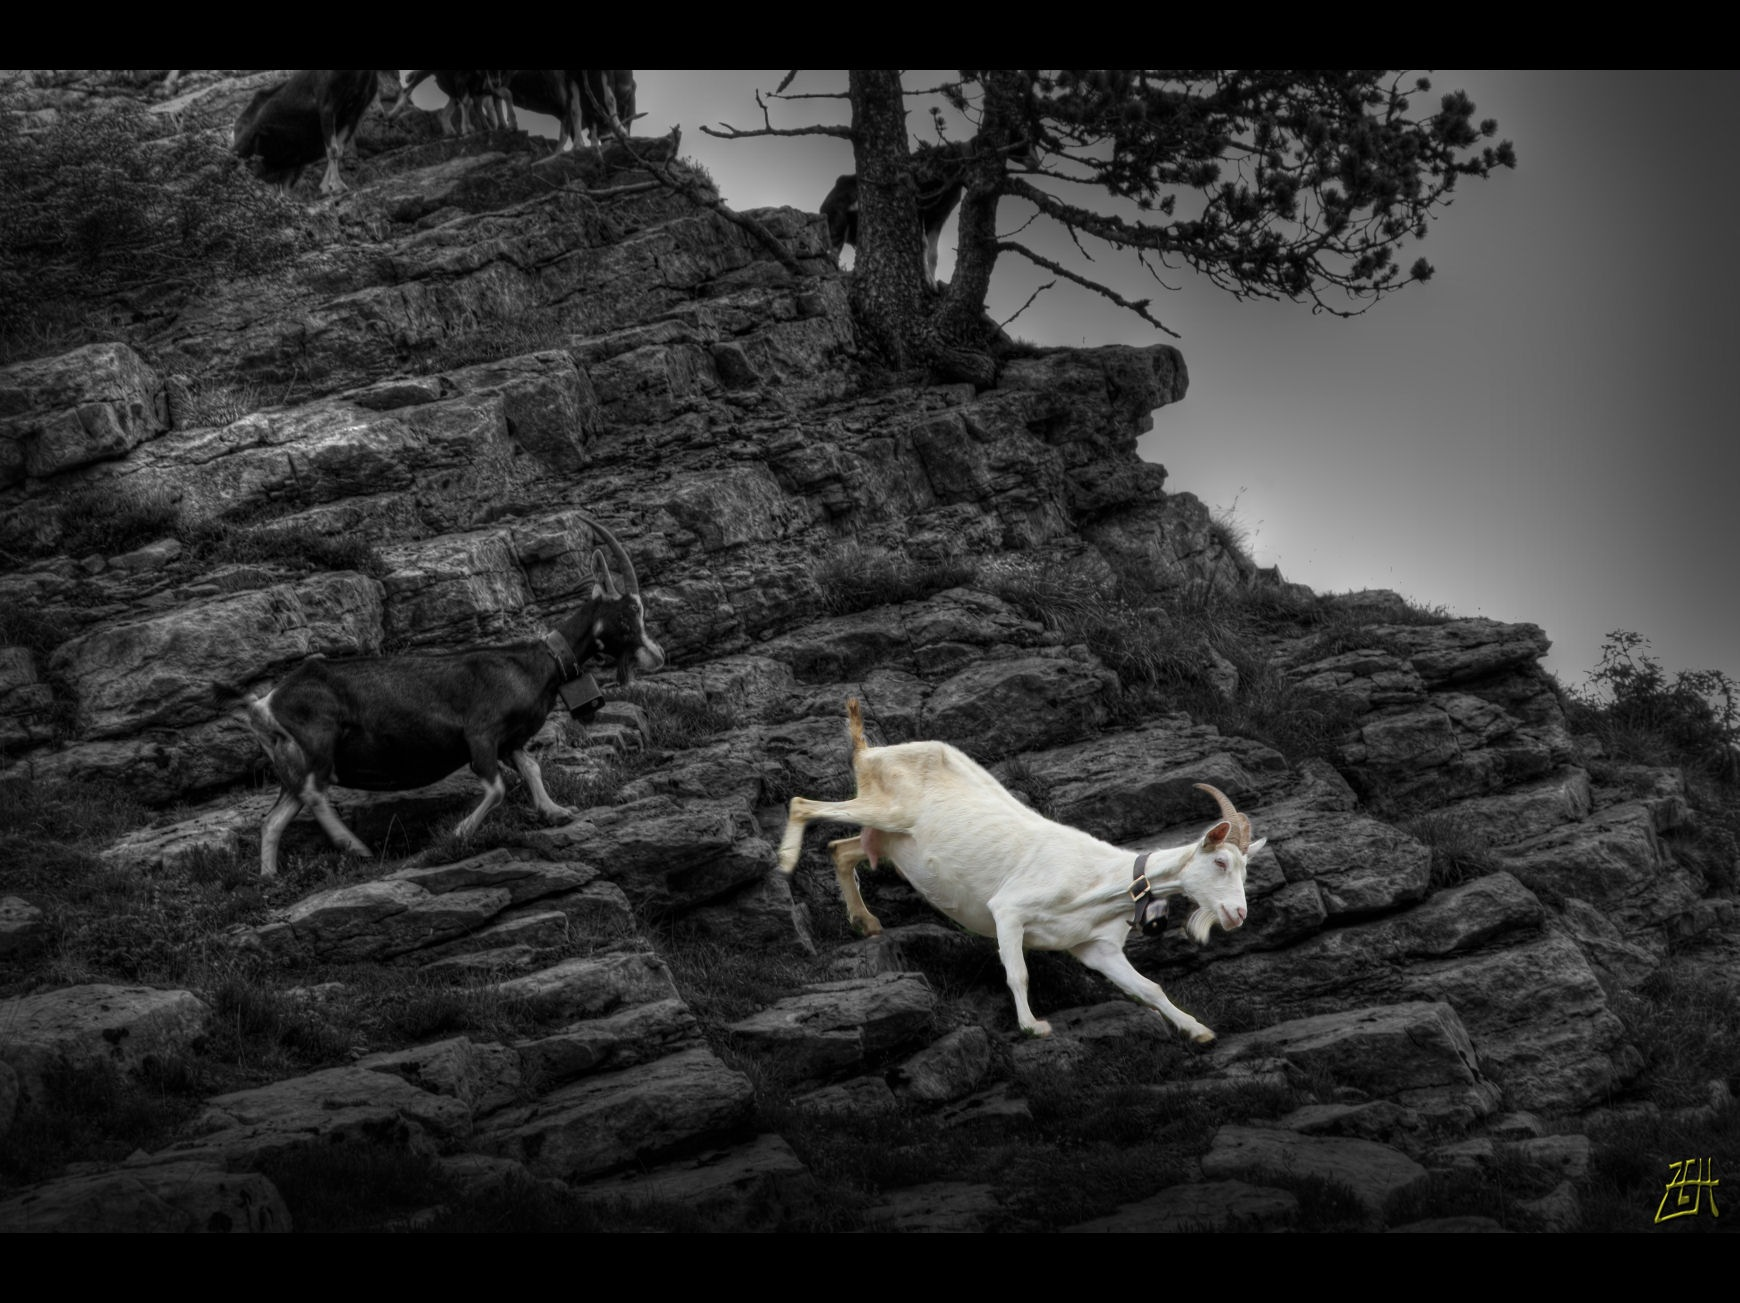 The White Goat by Zelidar